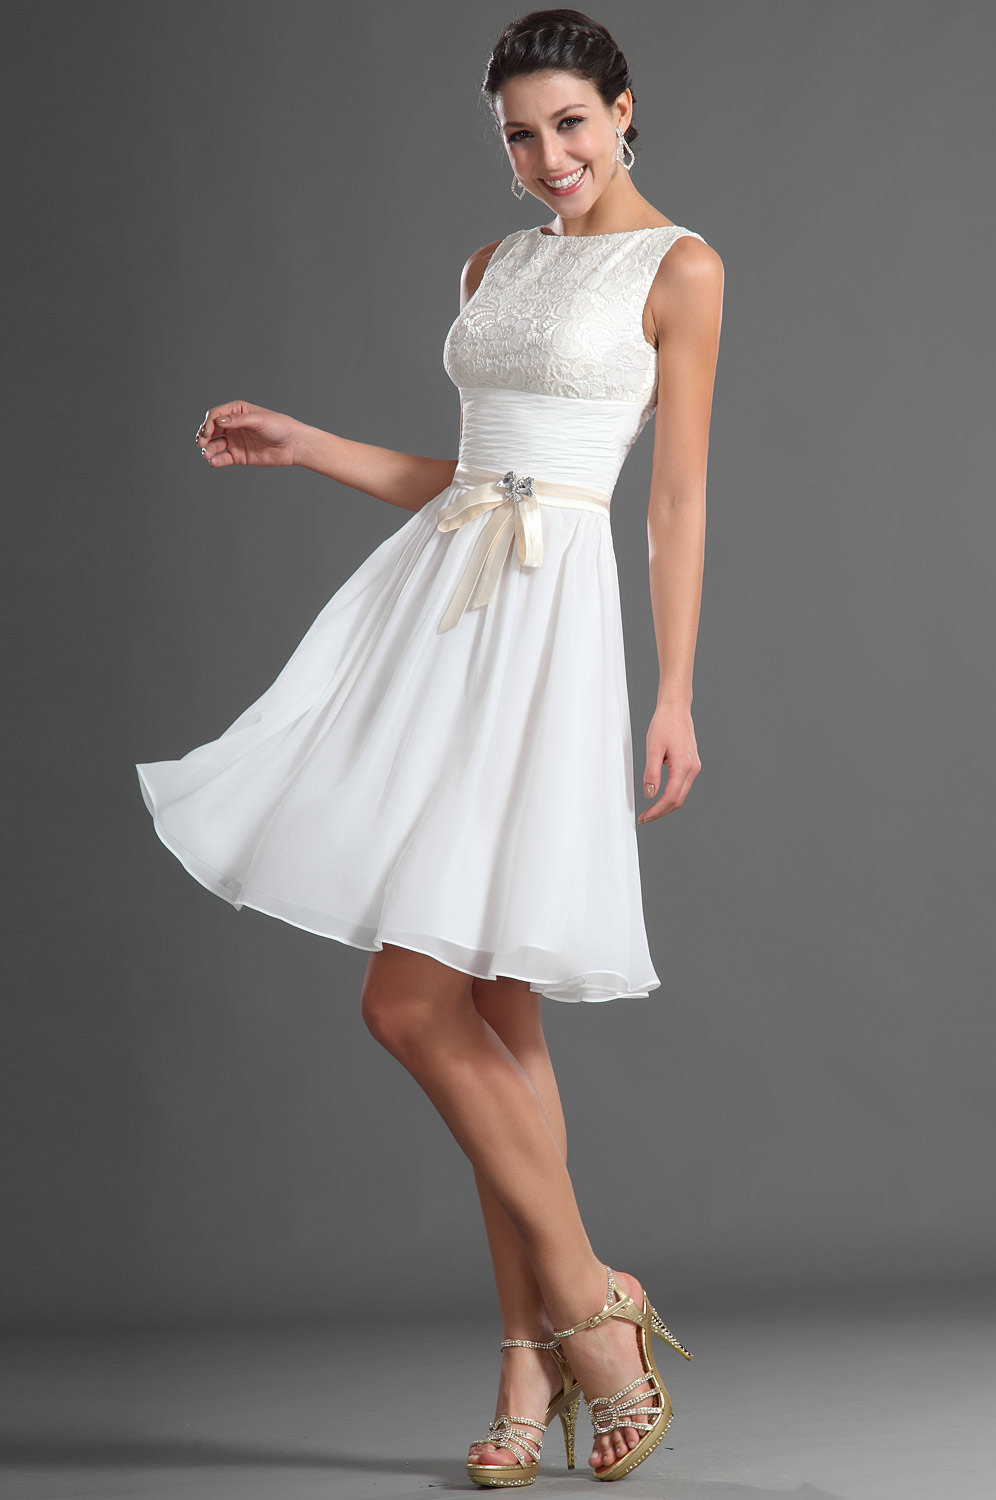 7fb485a46cca Homecoming Dresses 2014 Fresh Scoop A Line Knee Length White Chiffon Lace  Ribbon Sash Ruched Bow Short White Graduation Dresses -in Homecoming Dresses  from ...